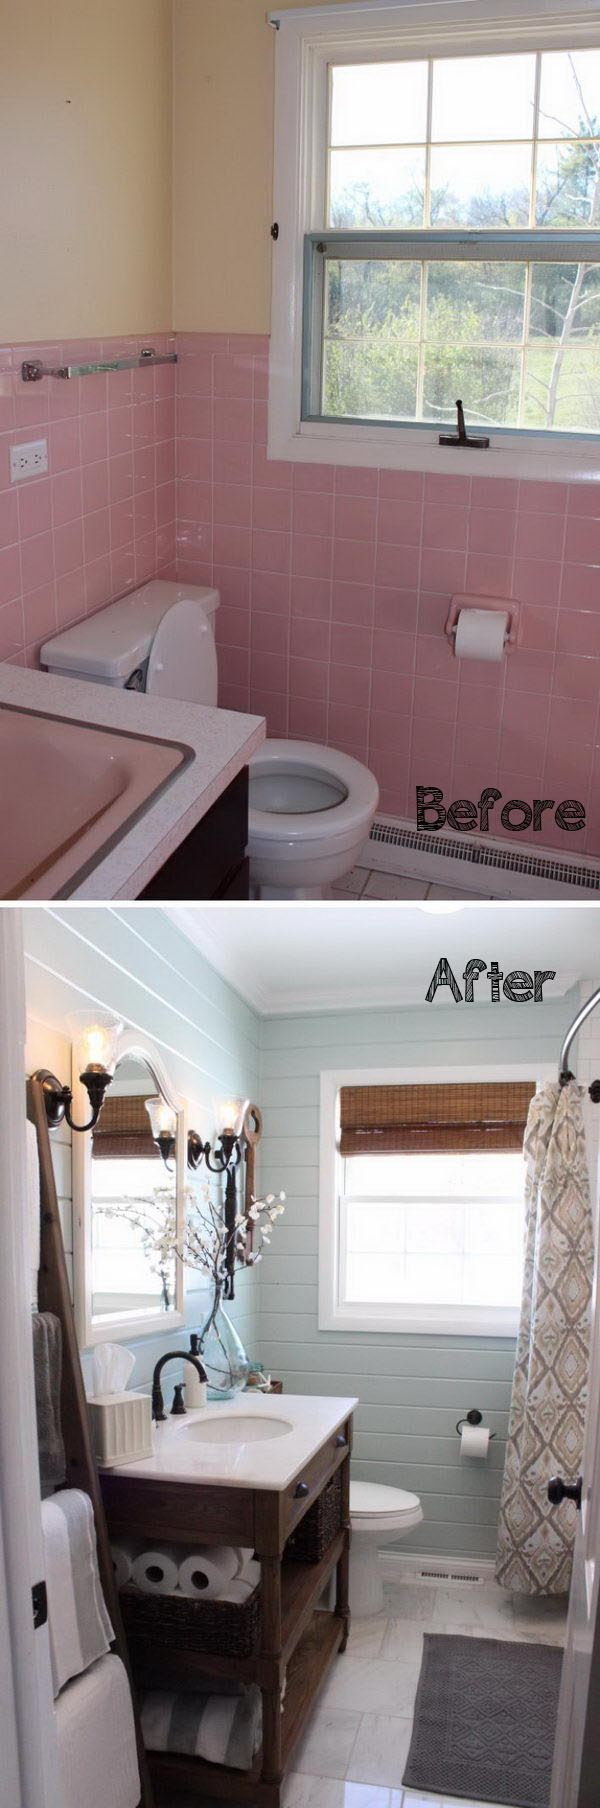 Blue Planked Walls Aith Crisp White Trim And Wood Details Bring In Farmhouse Style In This Bathroom Renovation.